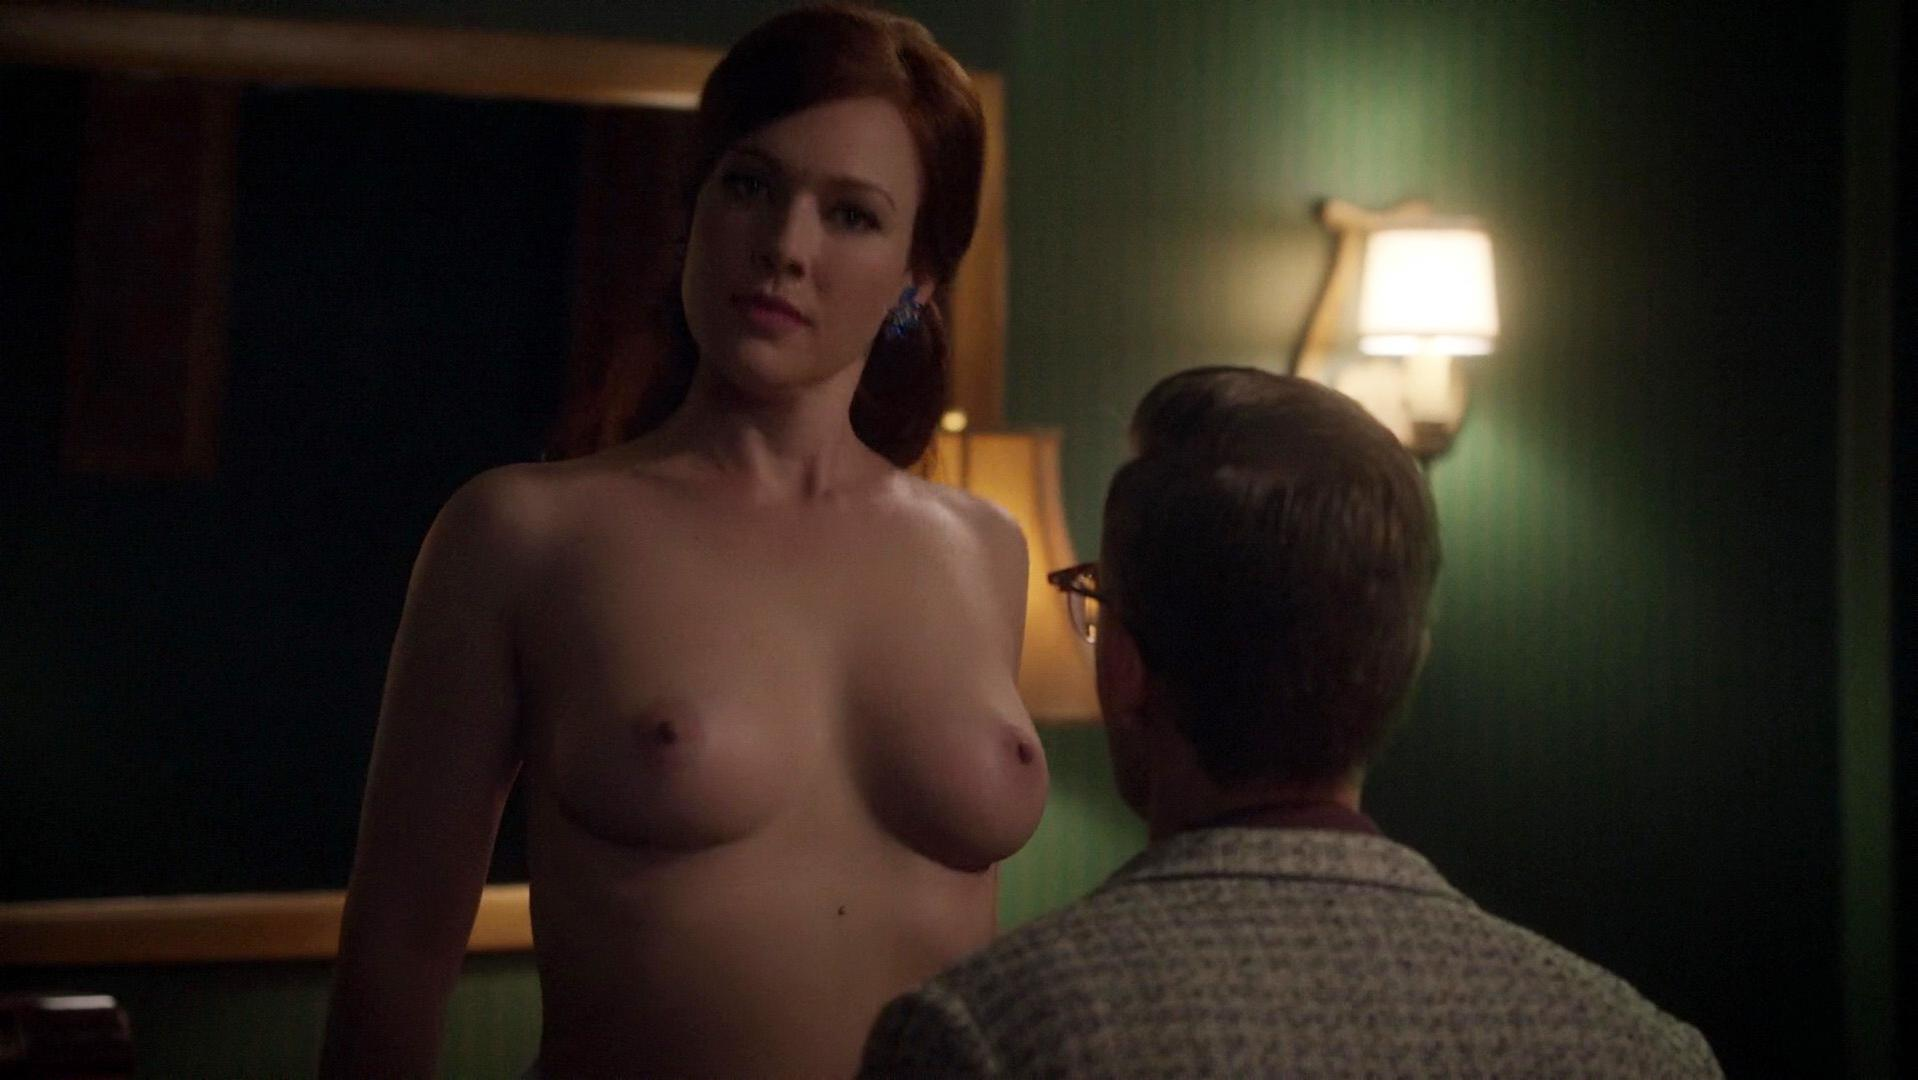 Erin Cummings nude - Masters of Sex s02e09 (2014)